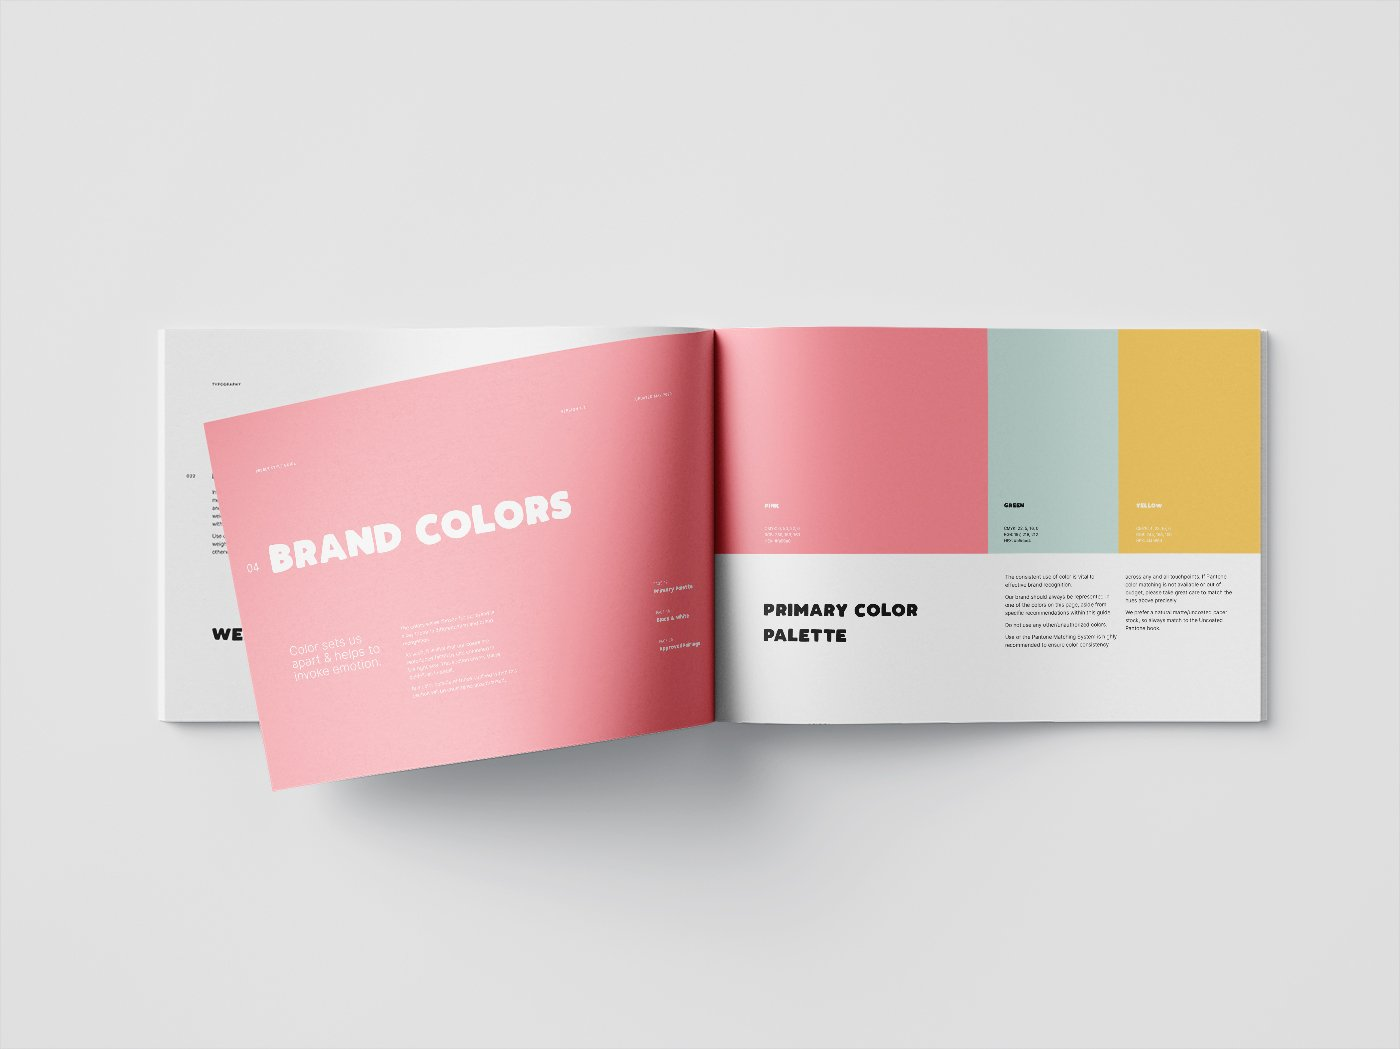 Sneak preview of a branded style guide.